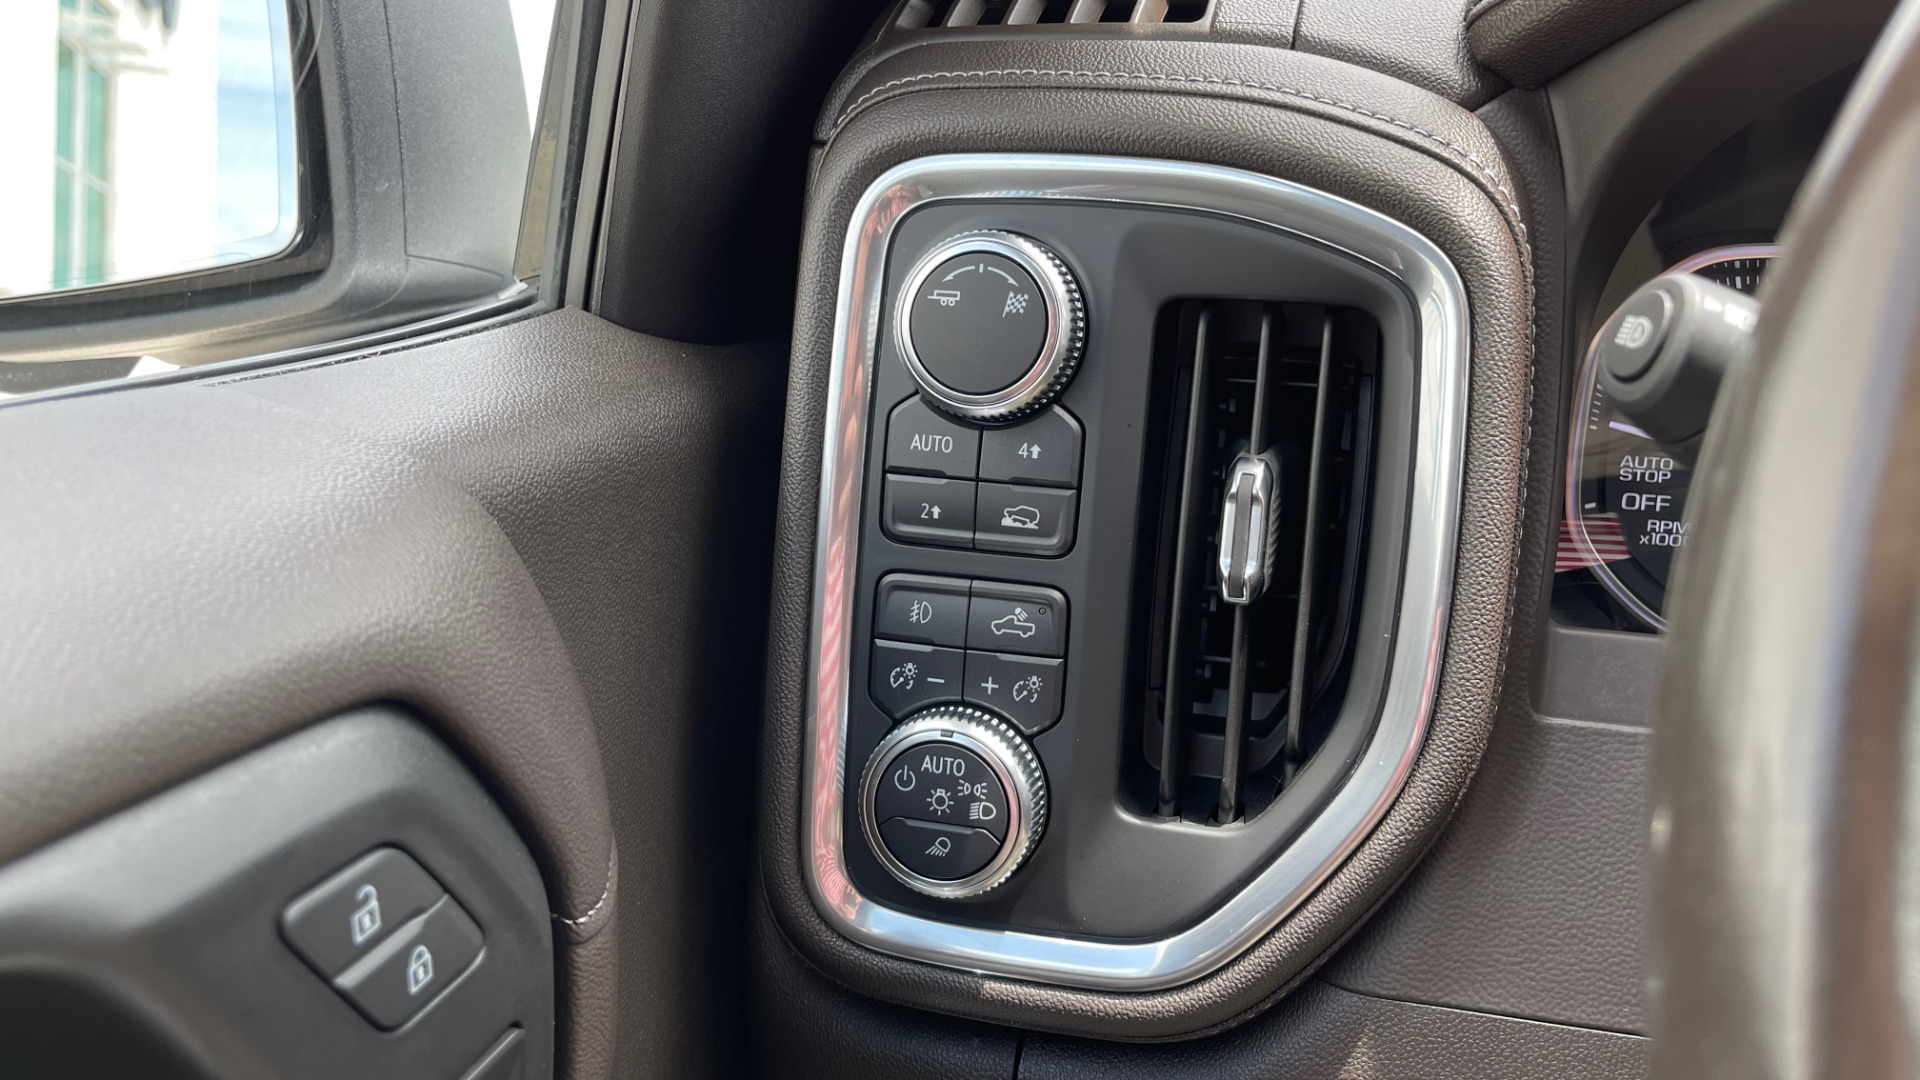 Used 2019 GMC SIERRA 1500 SLT 4X4 CREWCAB / 5.3L V8 / 8-SPD AUTO / NAV / BOSE / REARVIEW for sale $49,999 at Formula Imports in Charlotte NC 28227 44